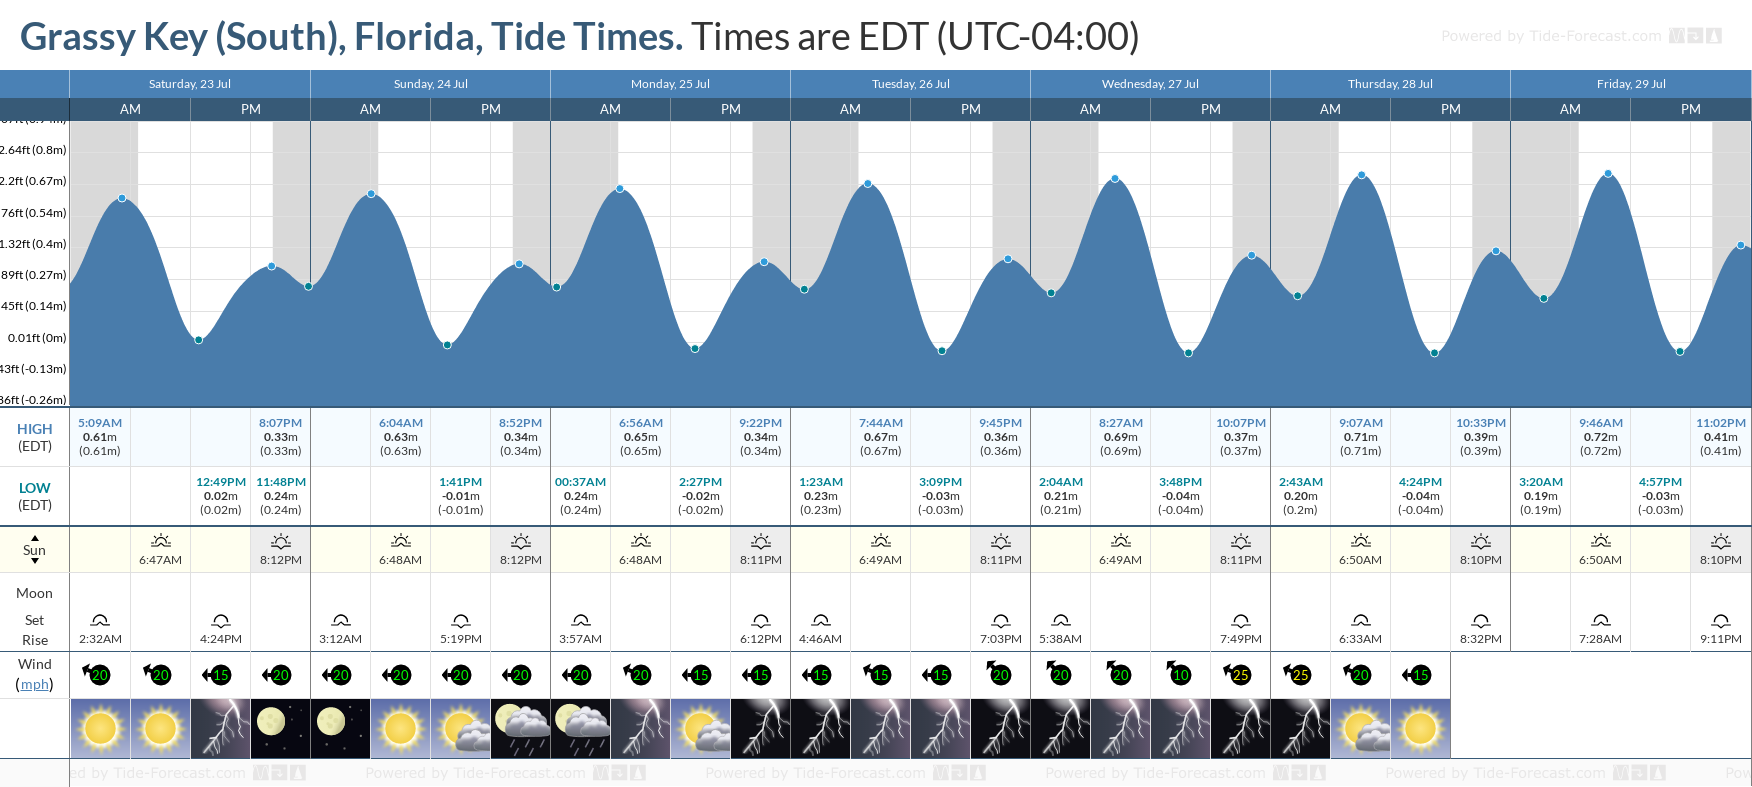 Grassy Key (South), Florida Tide Chart including high and low tide tide times for the next 7 days